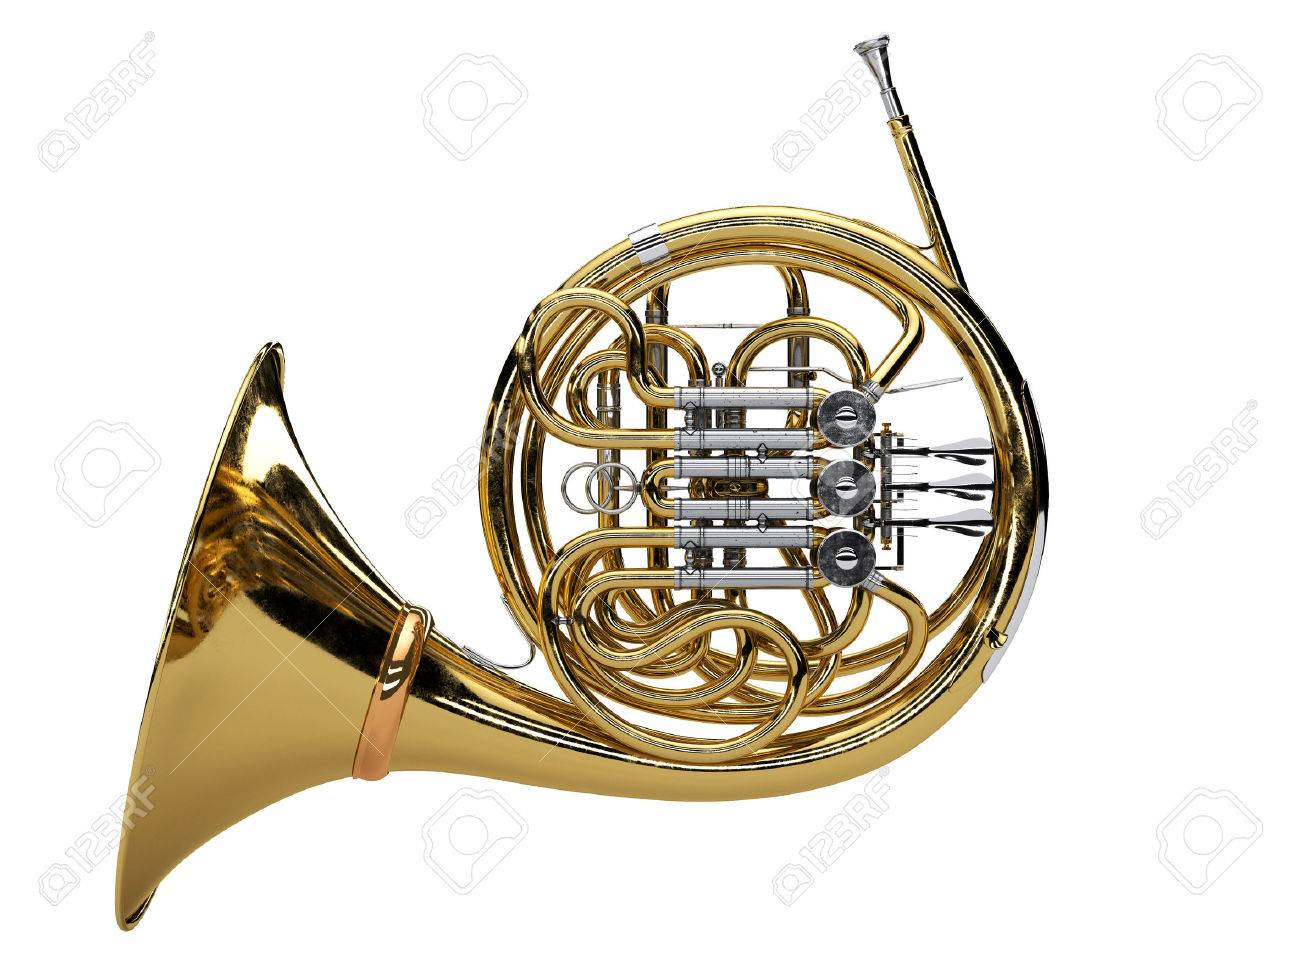 Aged french horn isolated on white background. 3d render Standard-Bild - 58115985